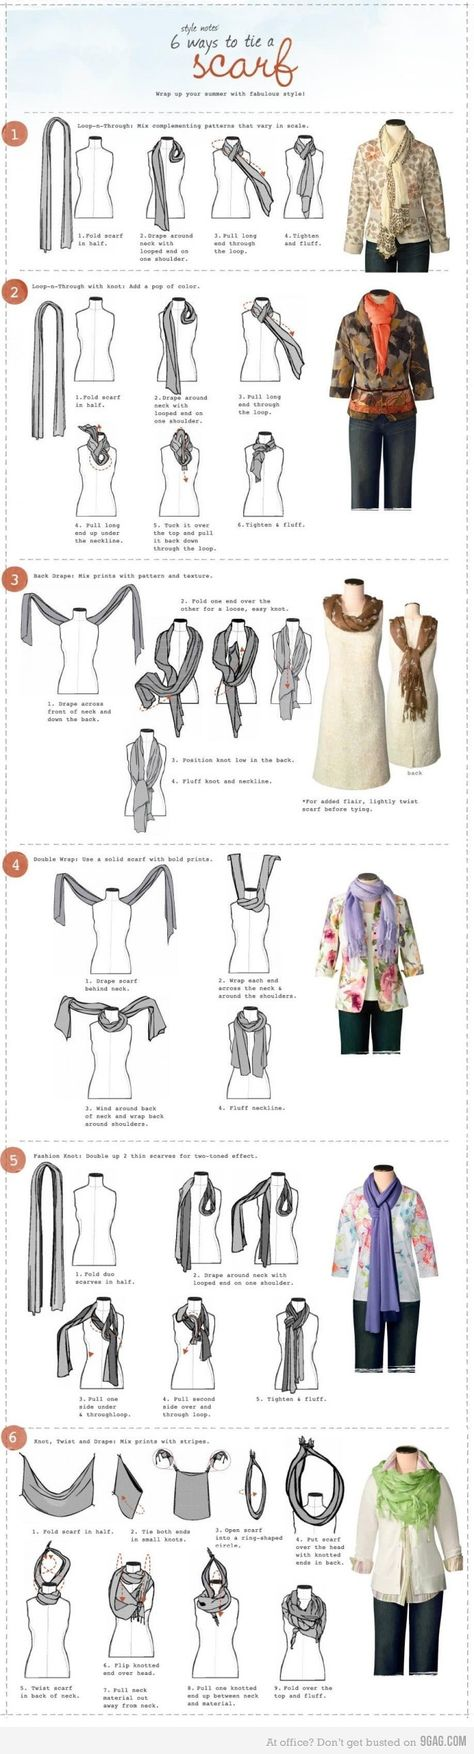 6 ways to knot a scarf